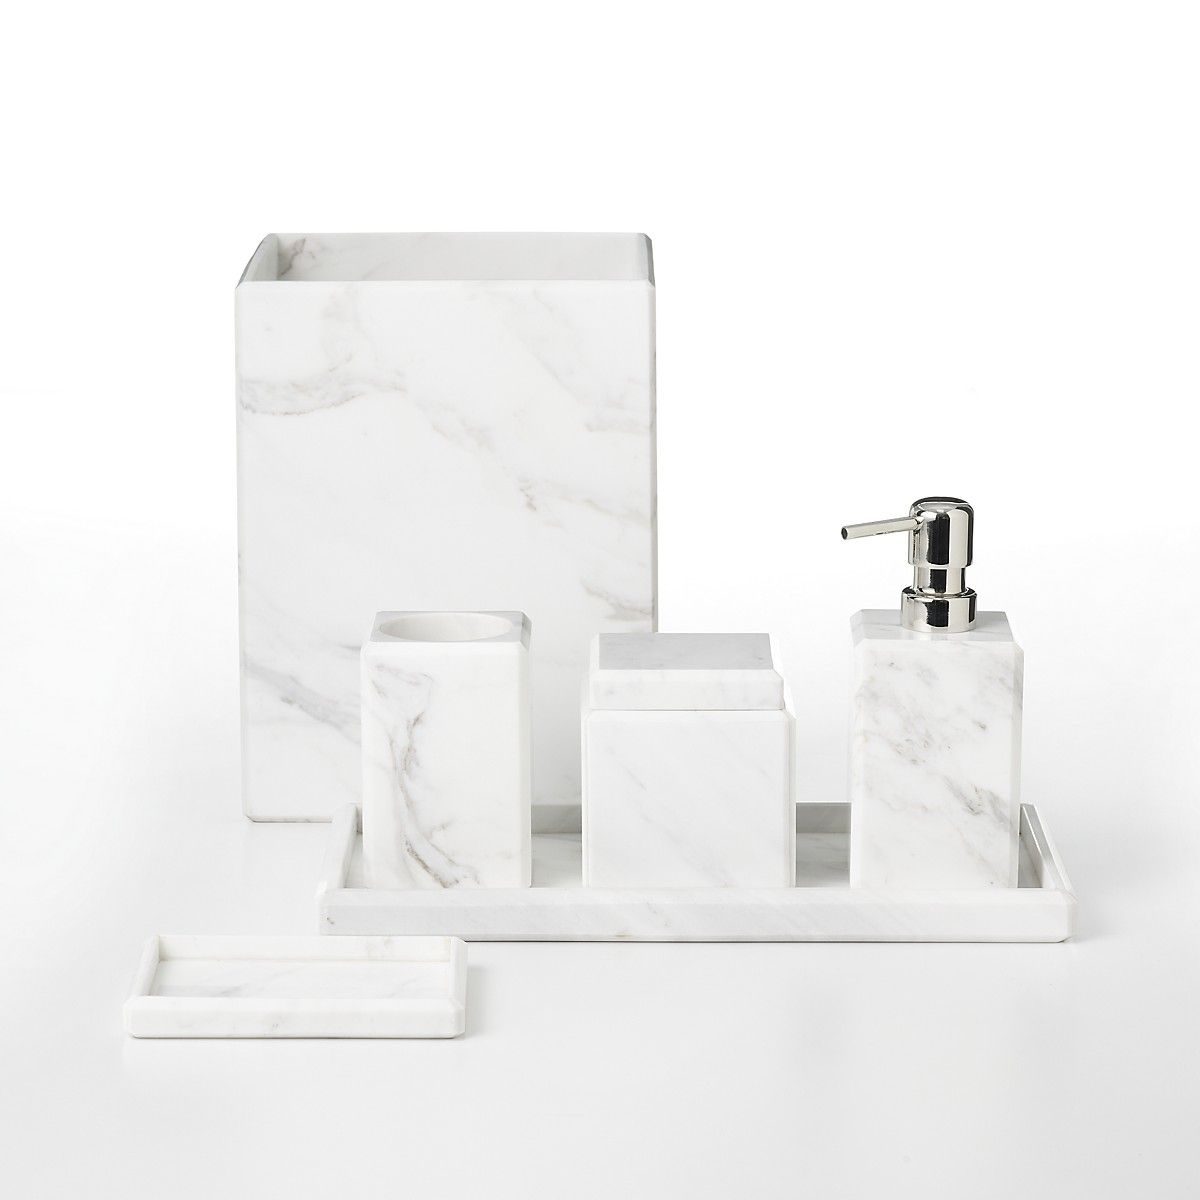 The introduction of Waterworks Studio collection provides the ultimate bath  solution fo. Waterworks Studio  White Marble  Wastebasket   Bloomingdale s